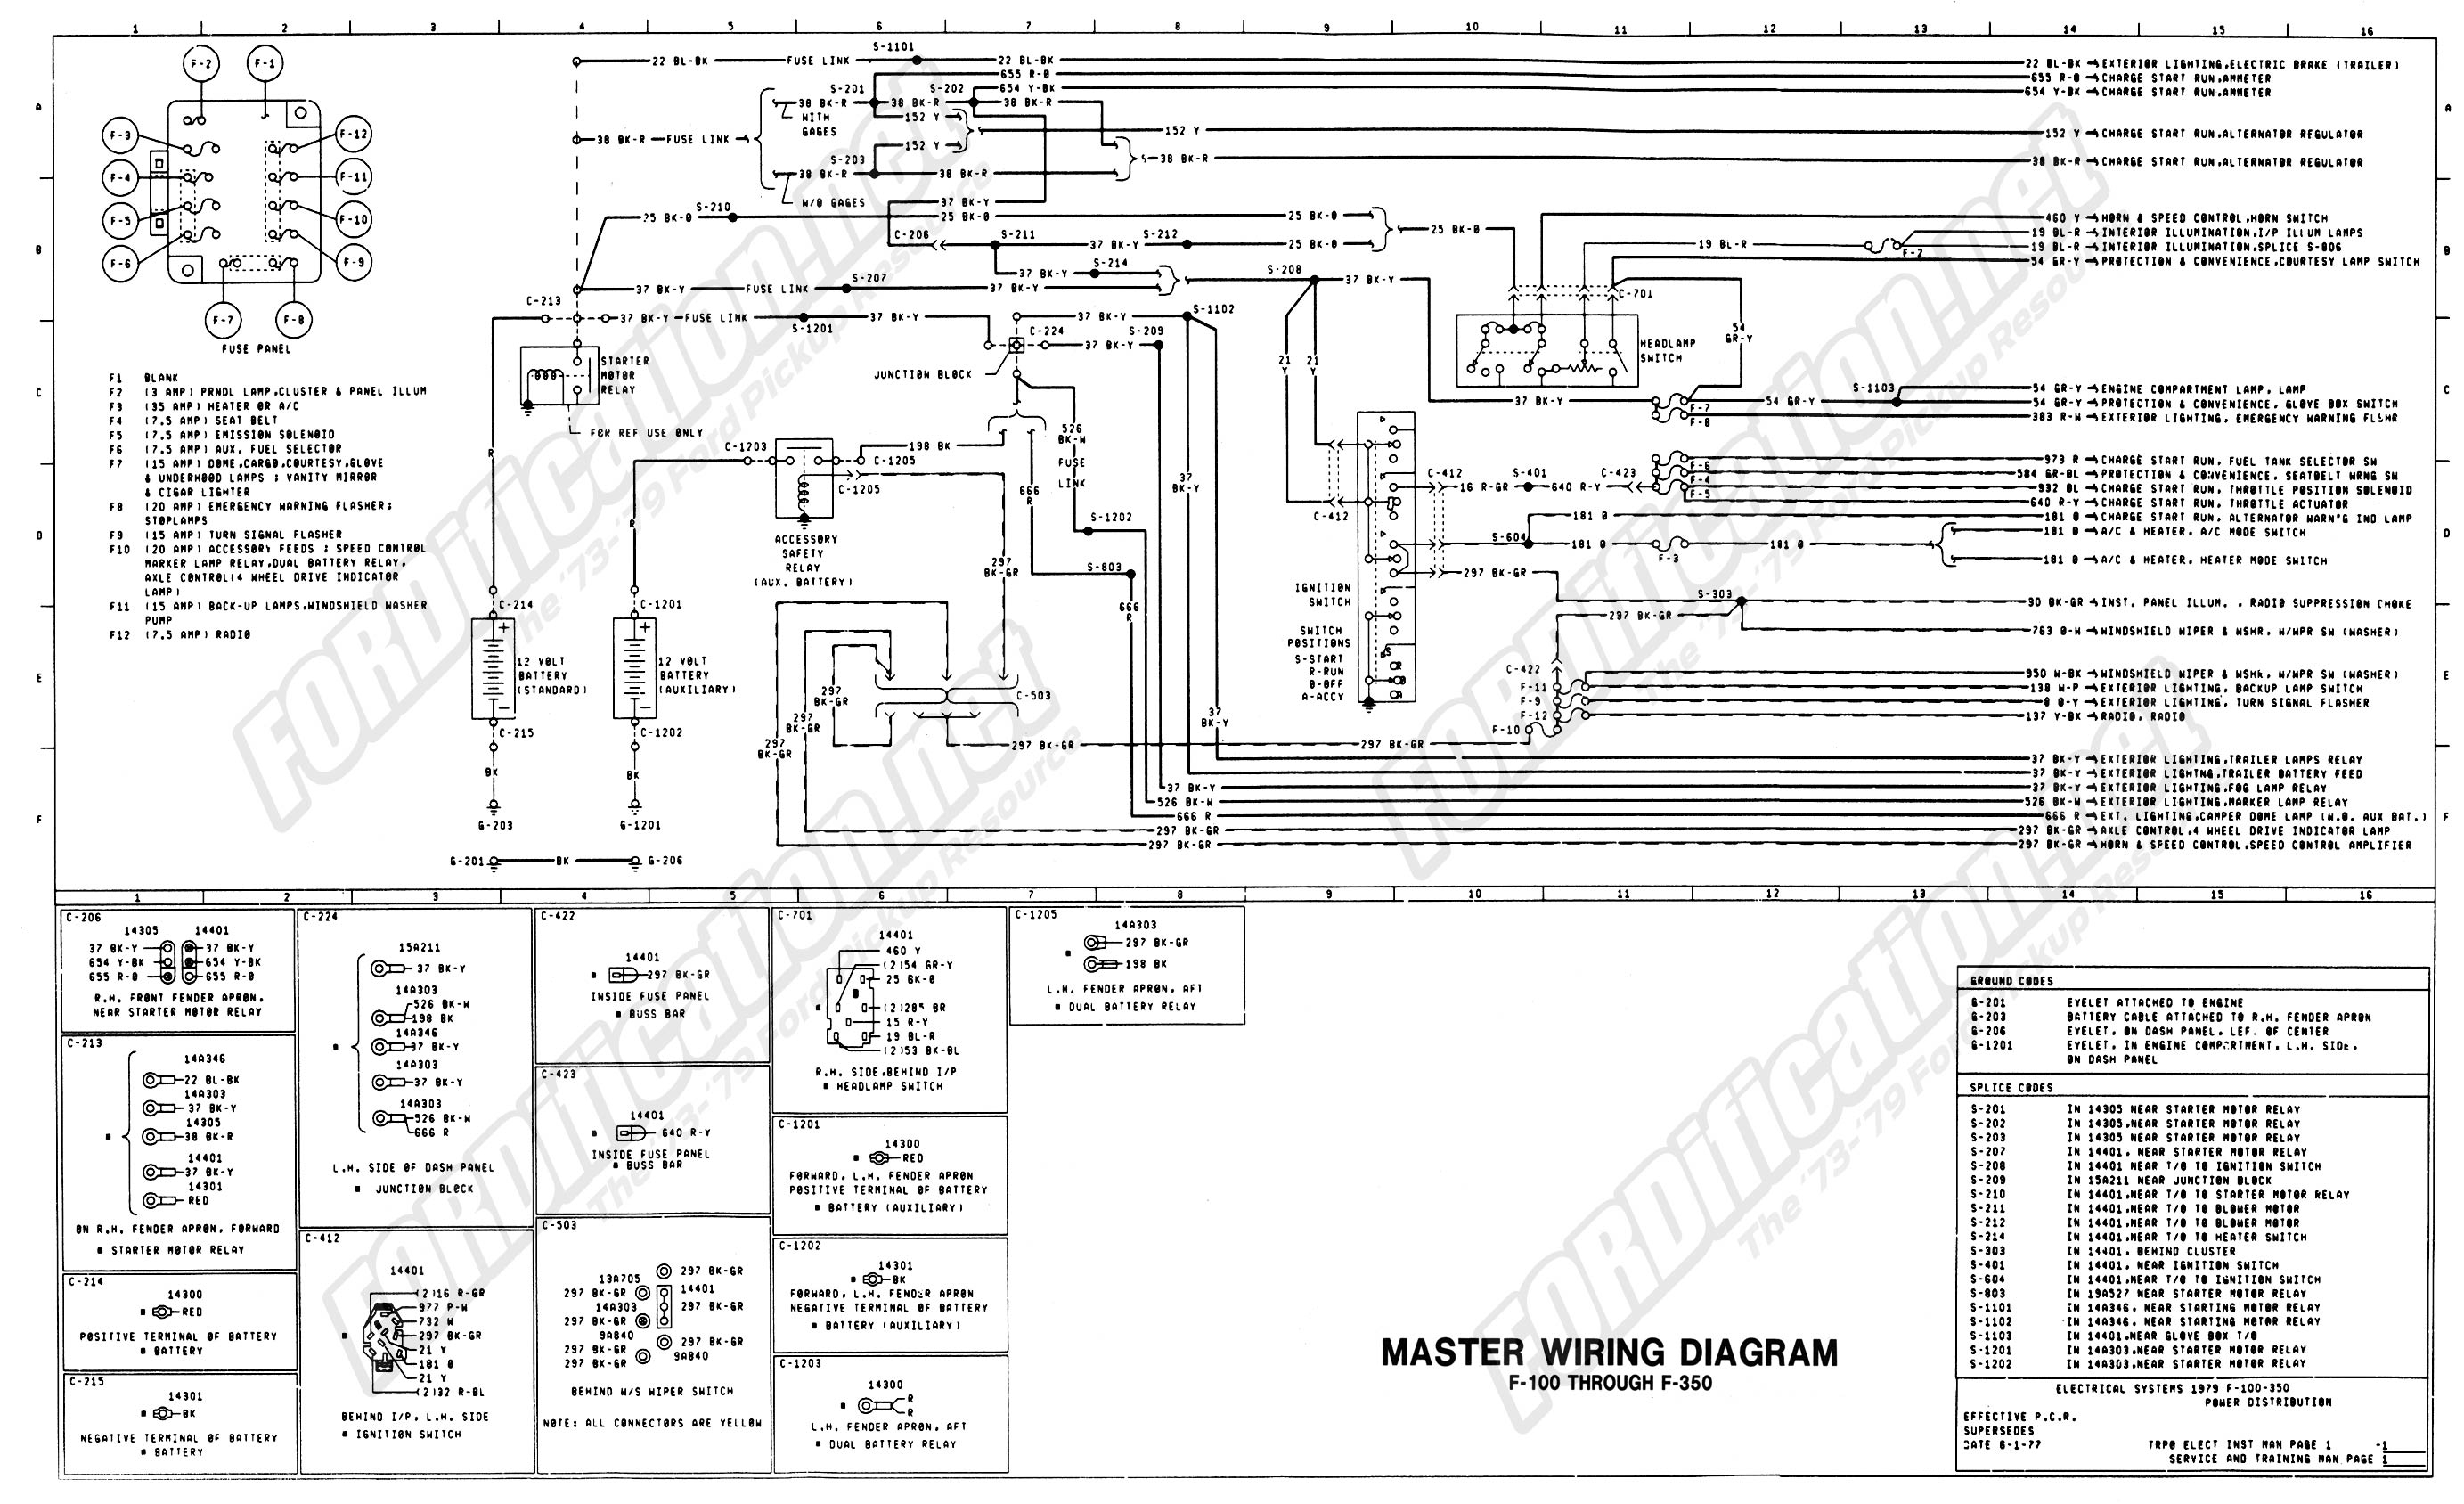 1988 ford F150 Radio Wiring Diagram Gallery Wiring